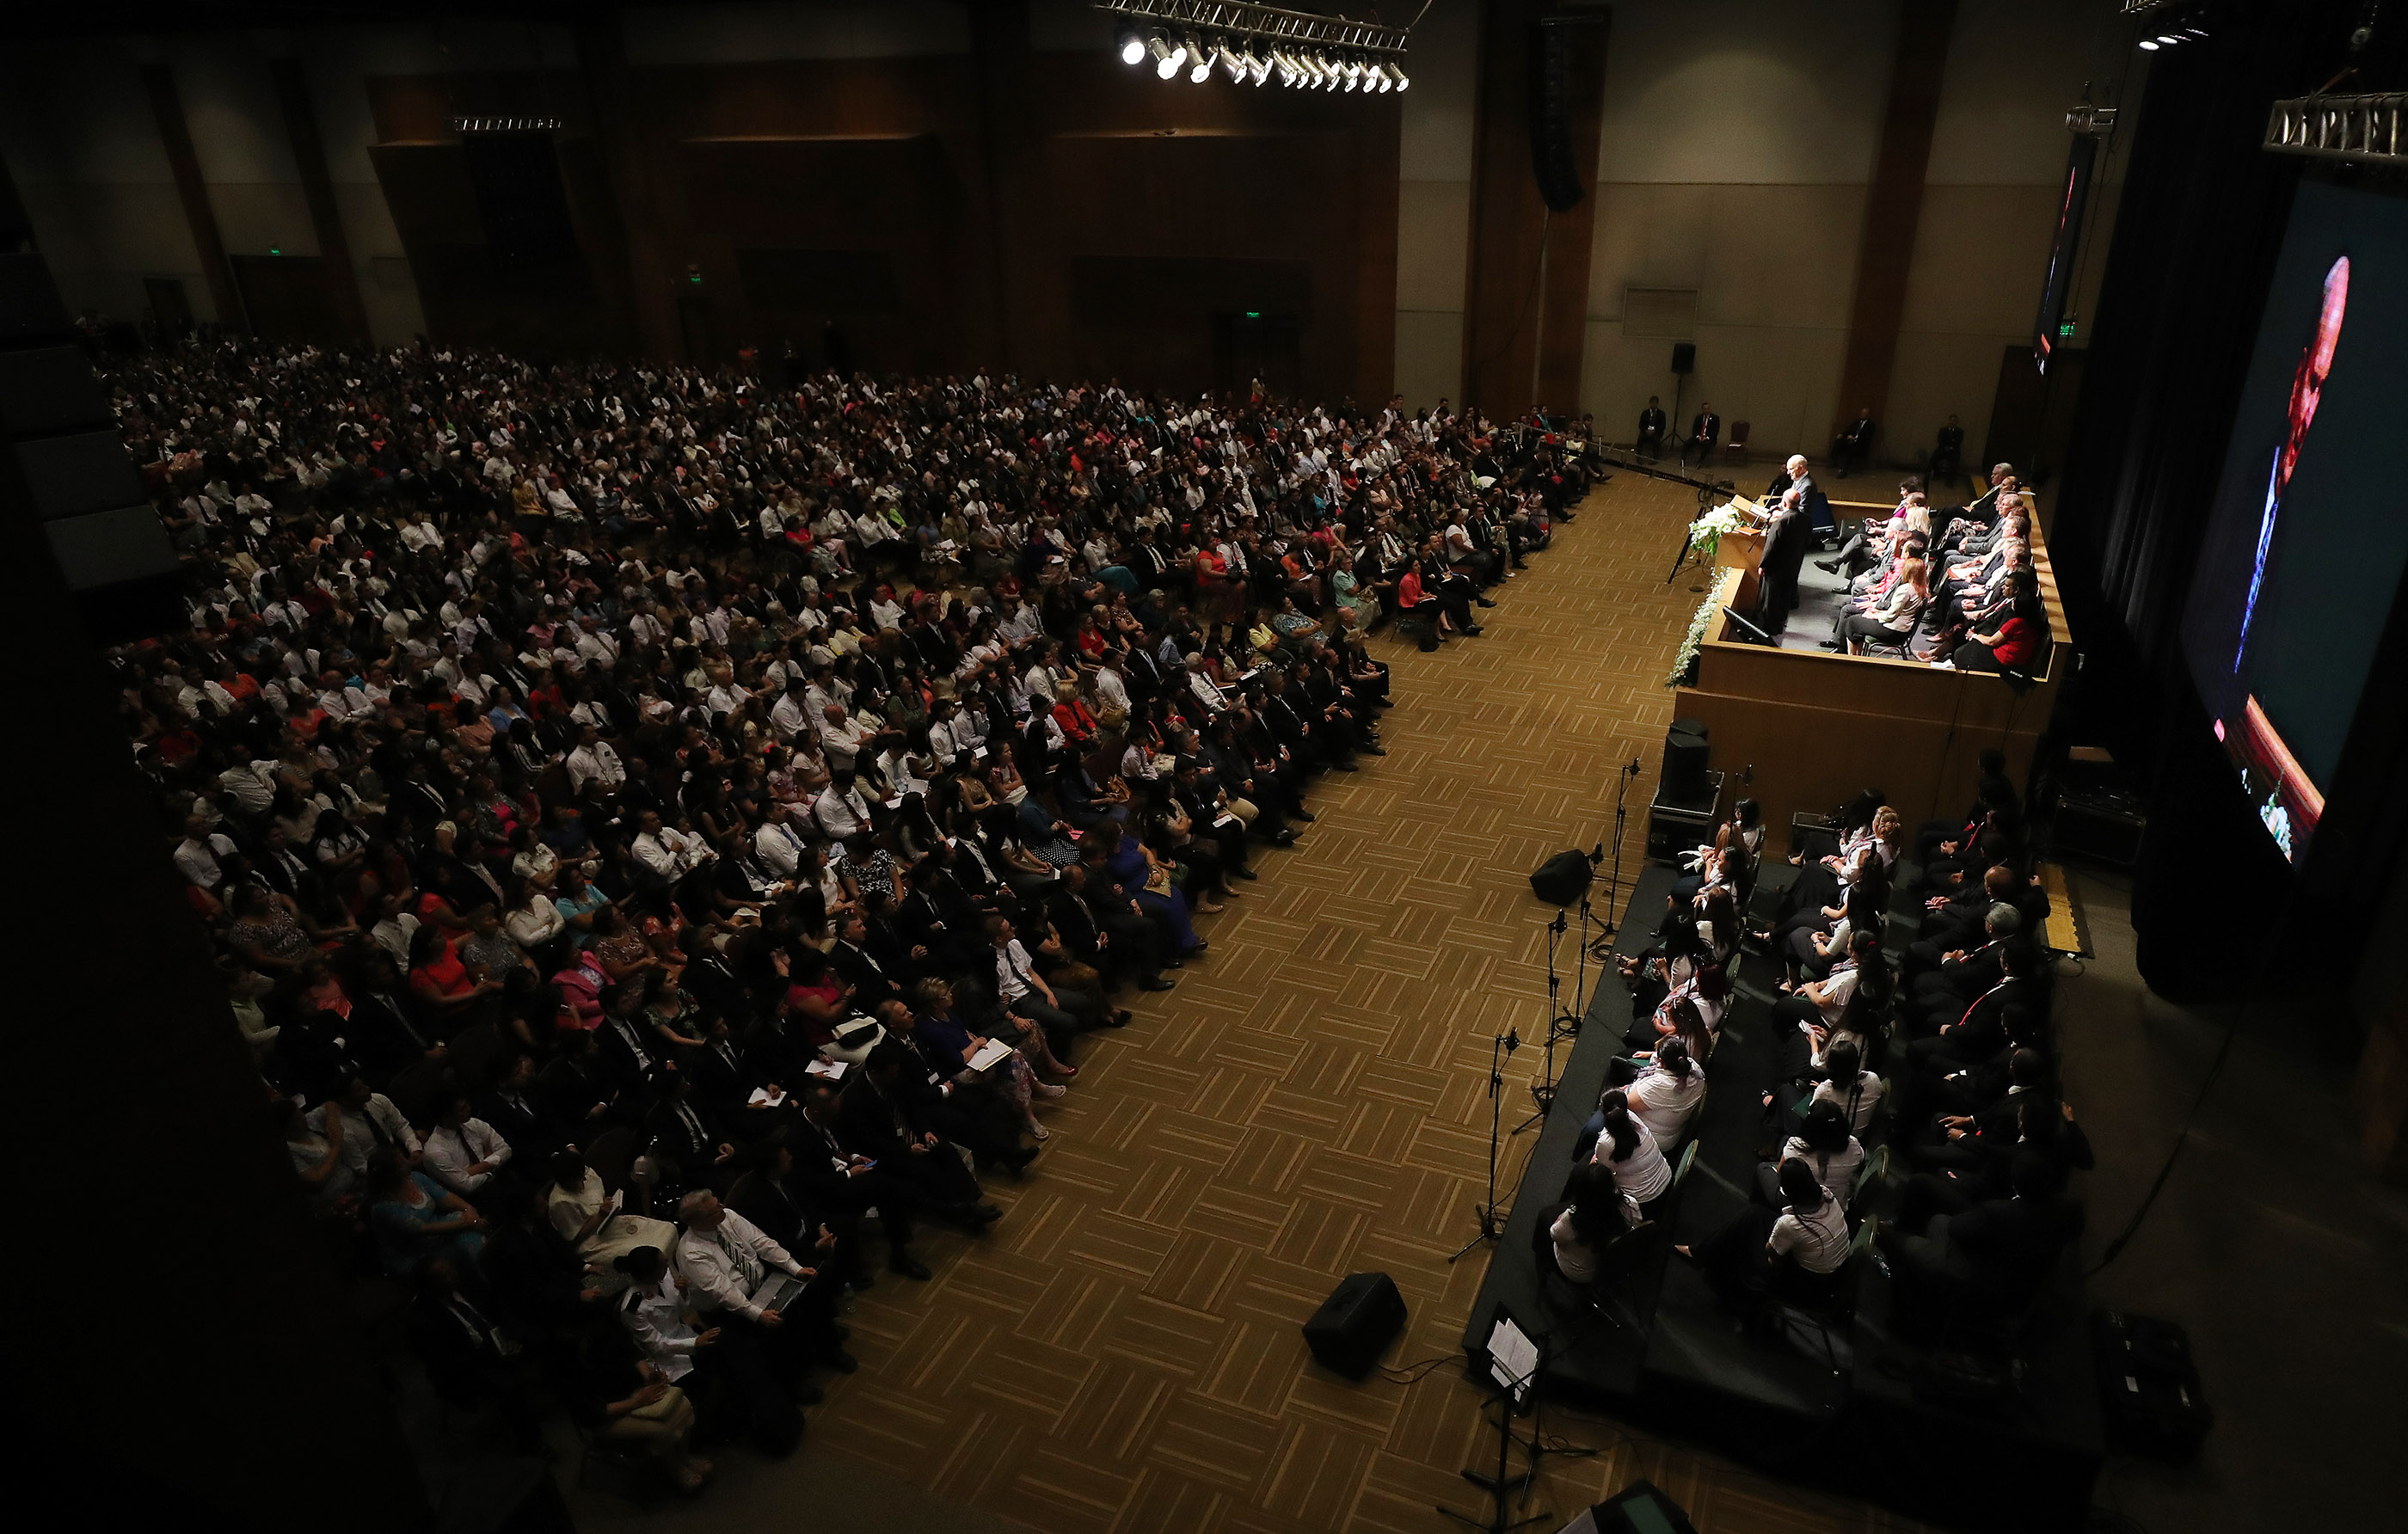 President Russell M. Nelson of The Church of Jesus Christ of Latter-day Saints speaks during a devotional in Asuncion, Paraguay, on Monday, Oct. 22, 2018.